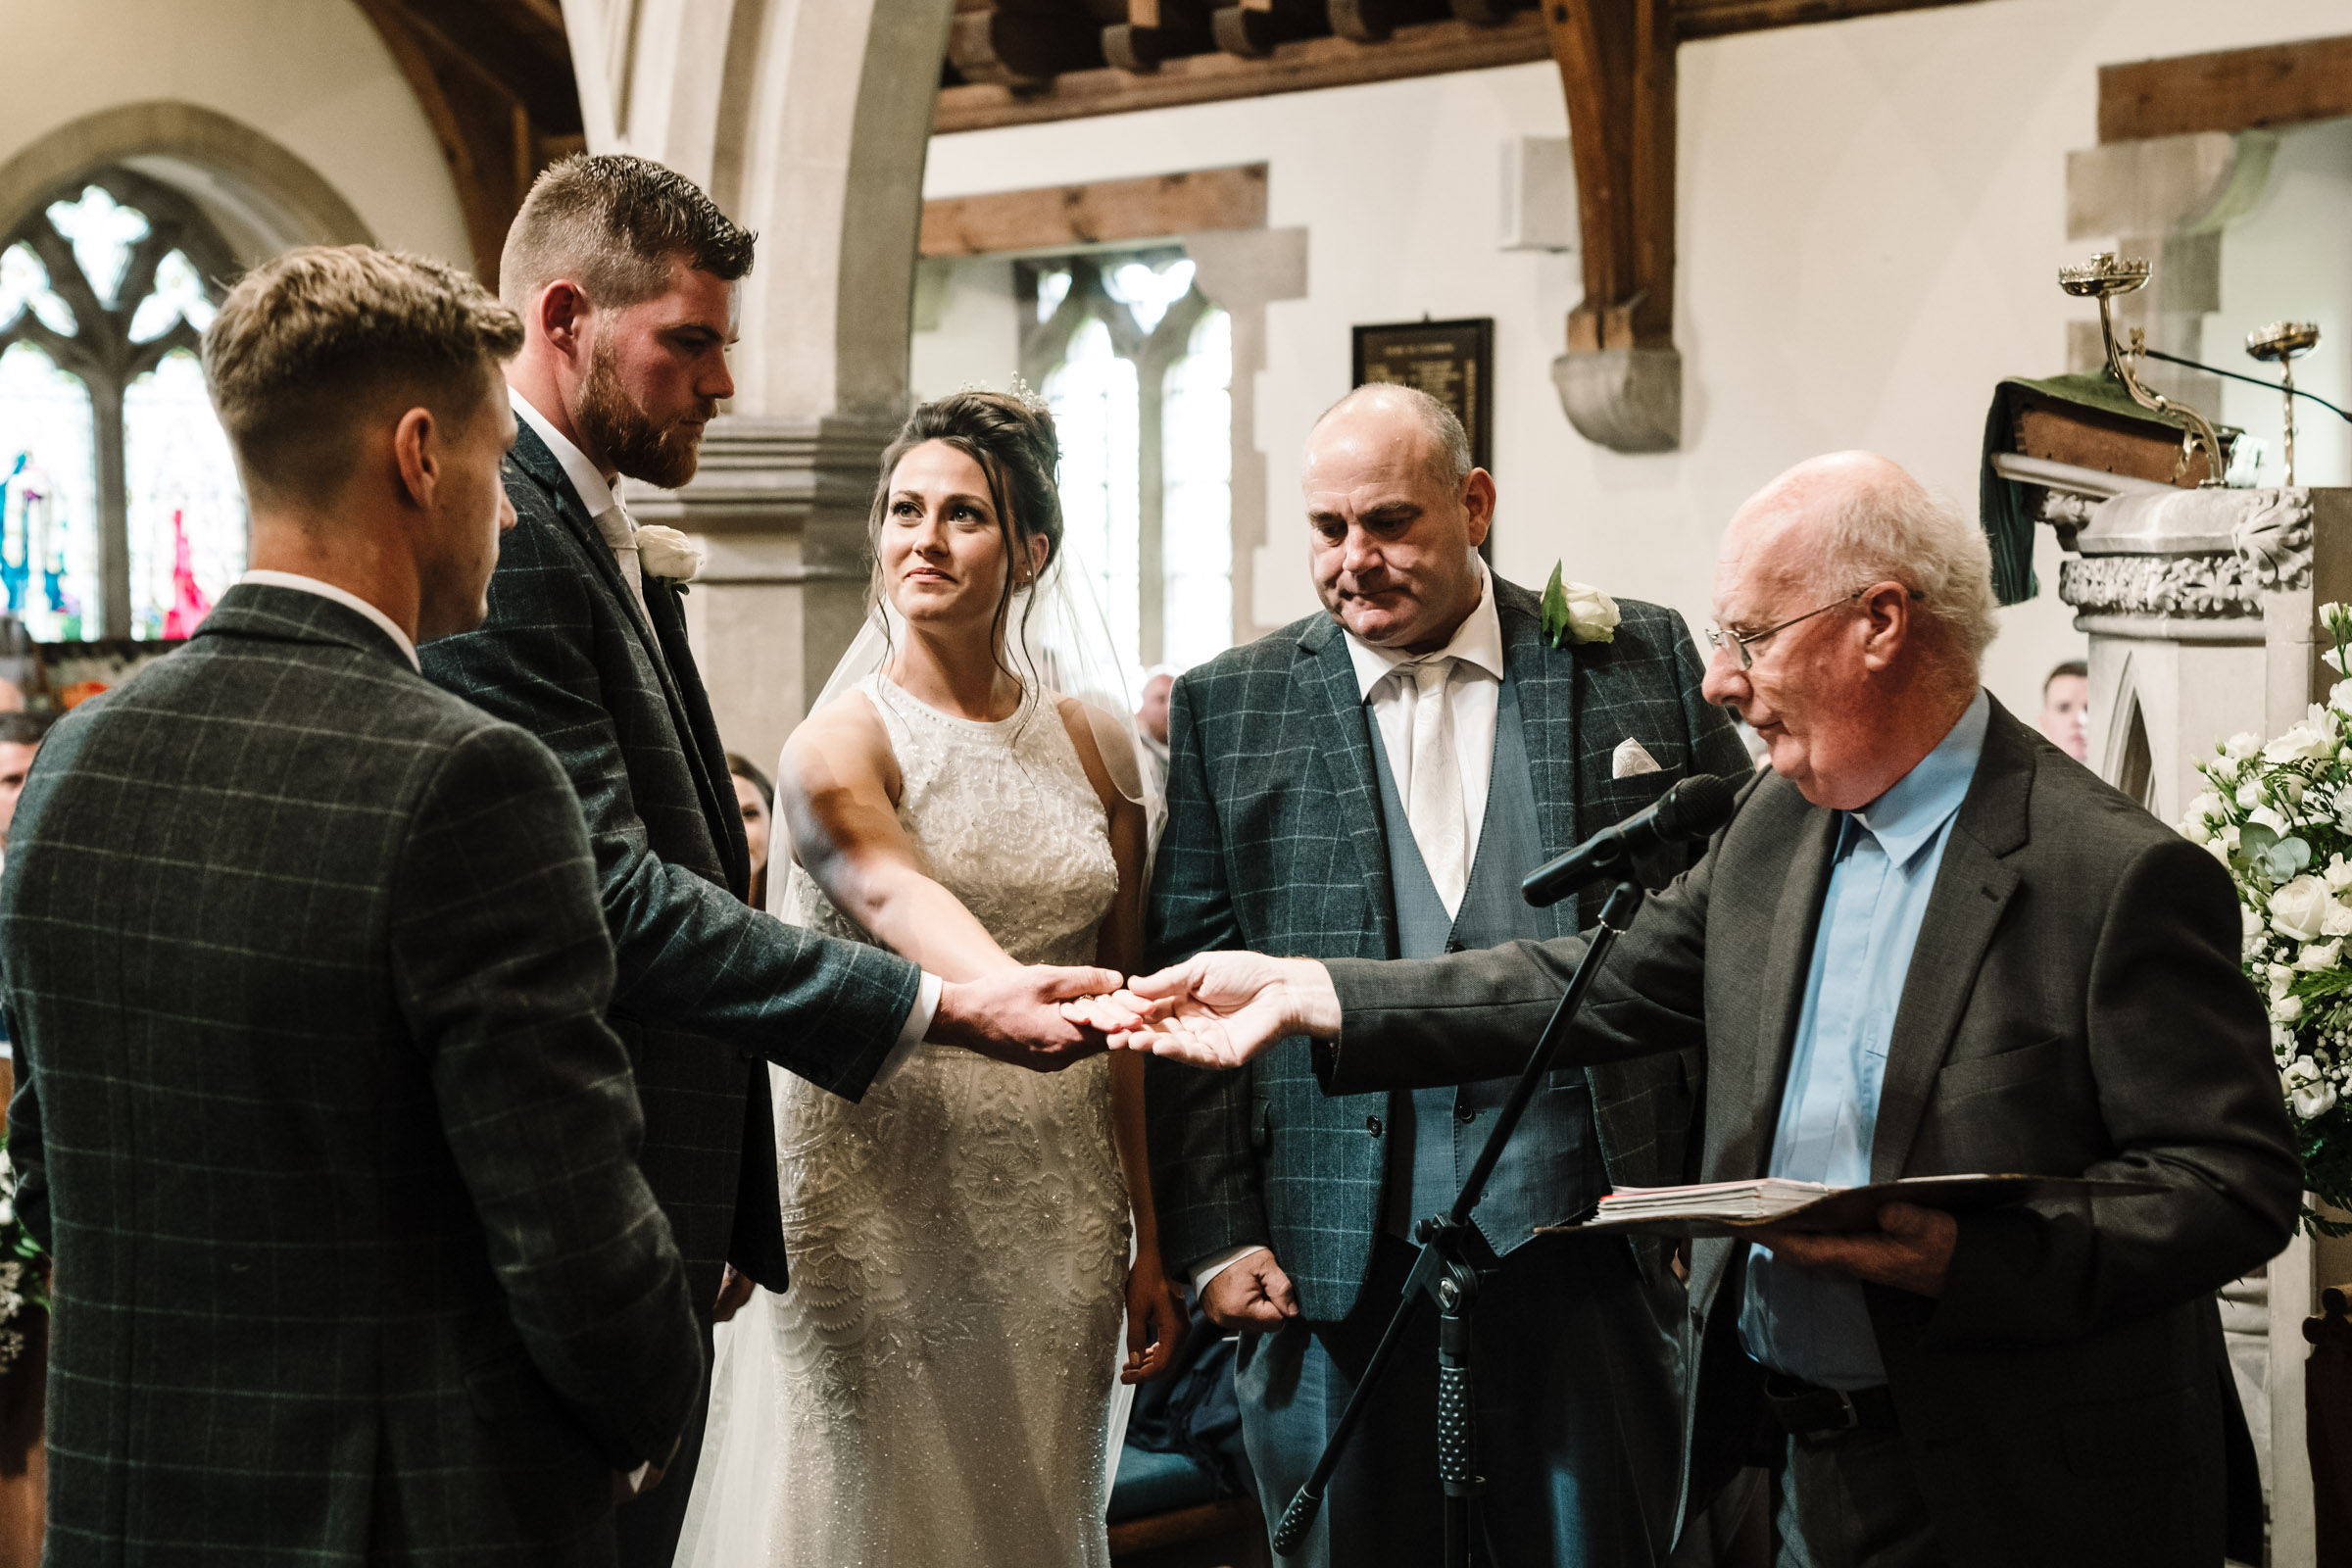 Father of the bride giving daughters hand in marriage